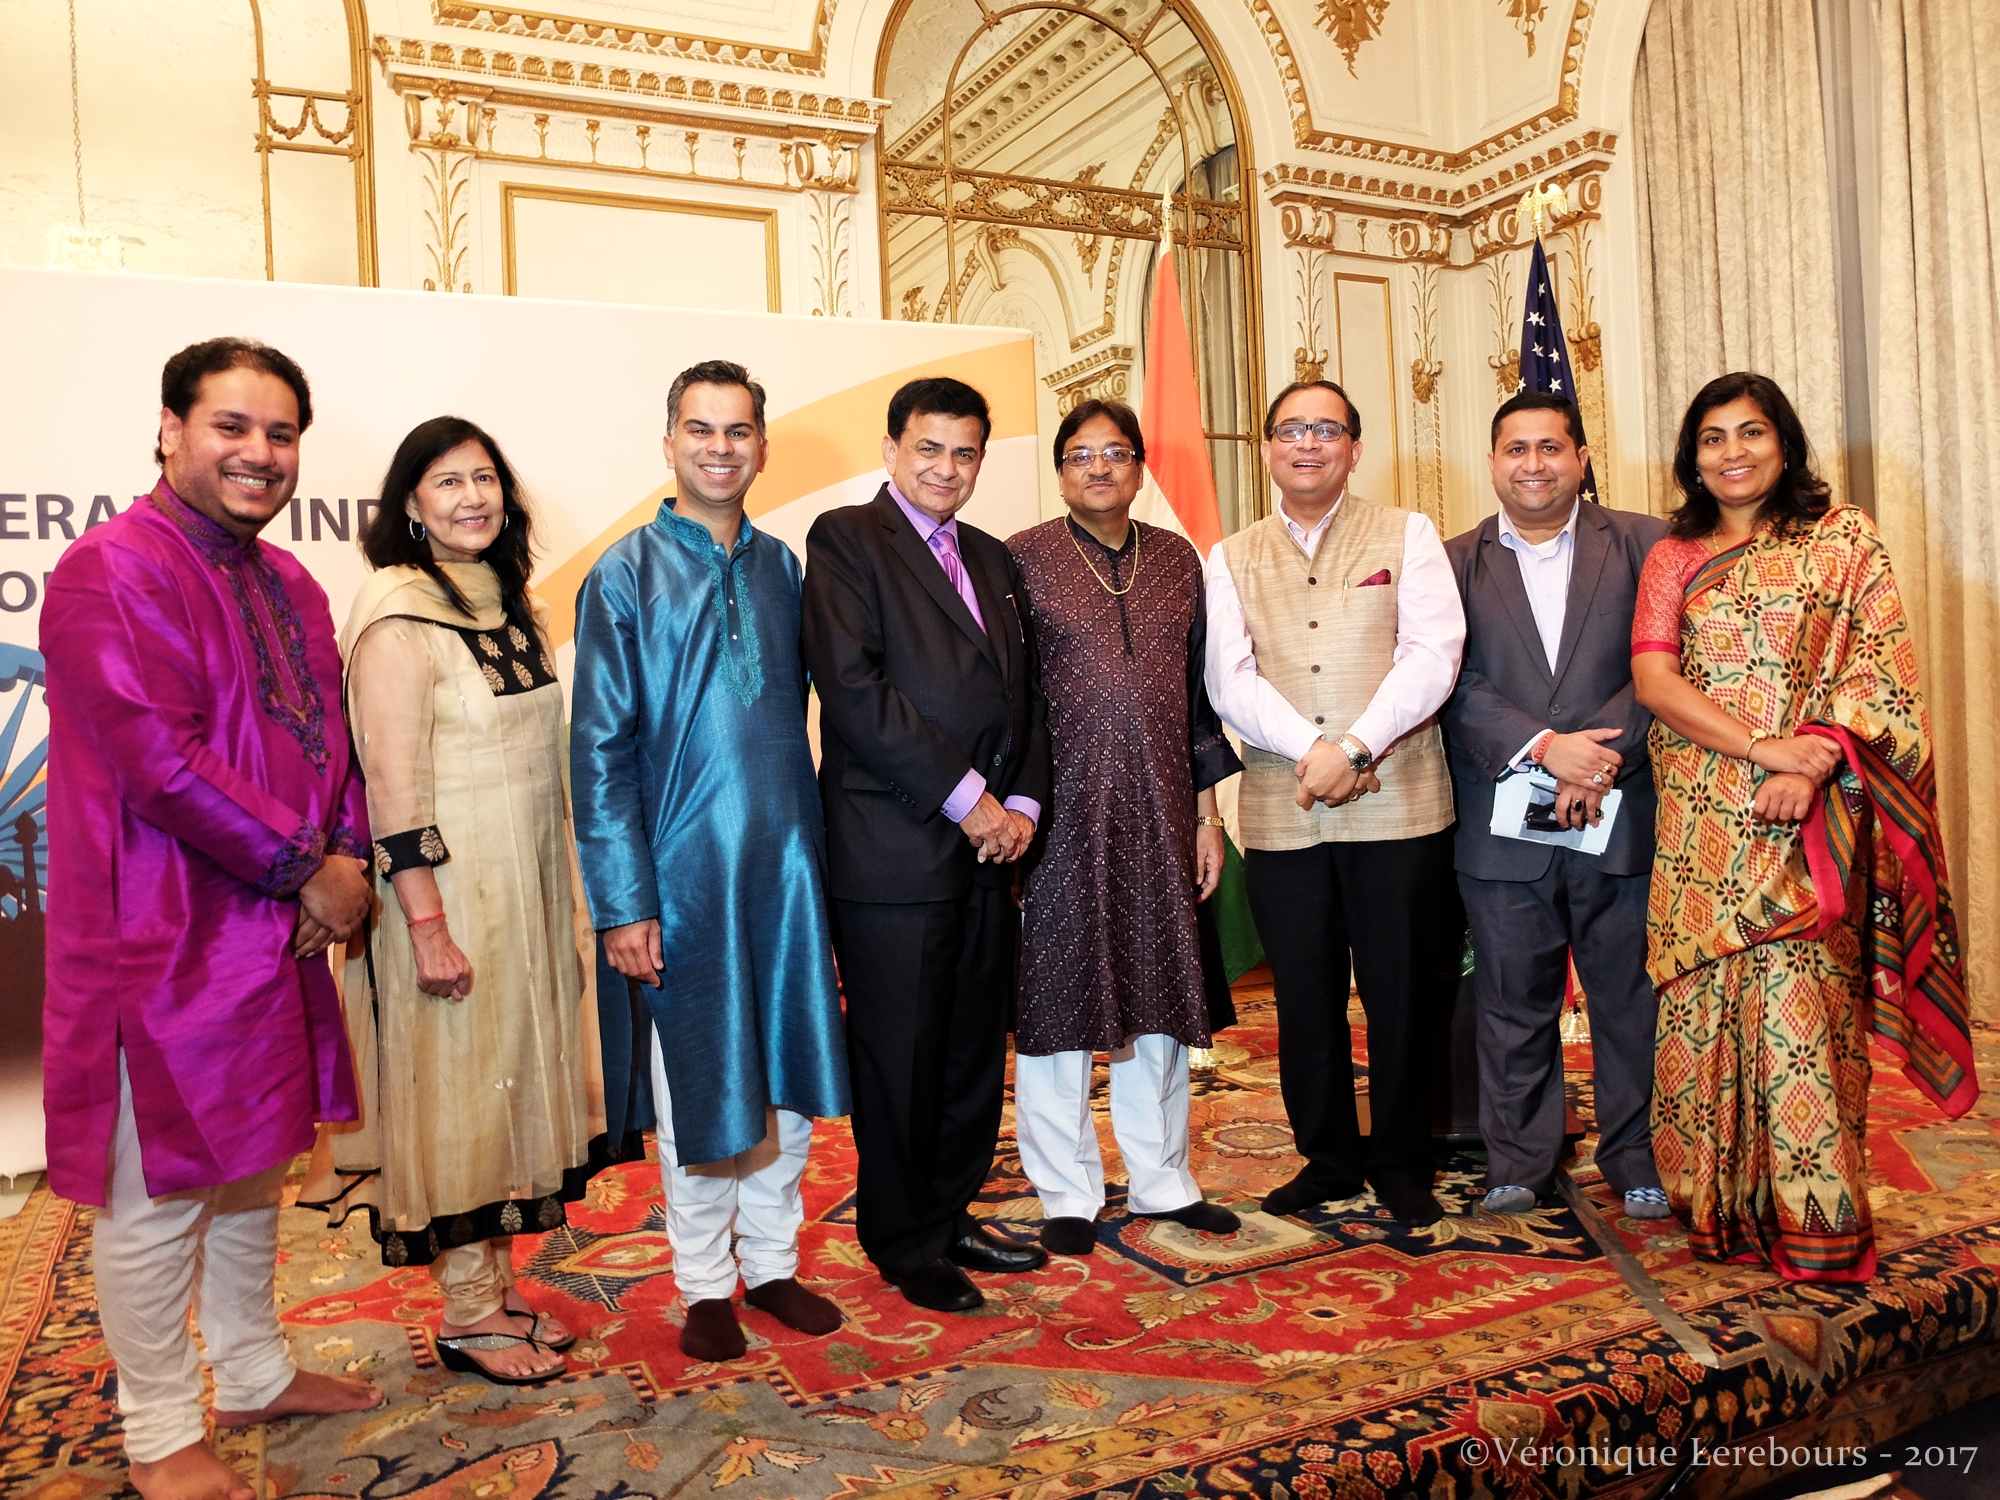 Concert indian consulate sept 15  2017 by veronique lerebours dscf0811